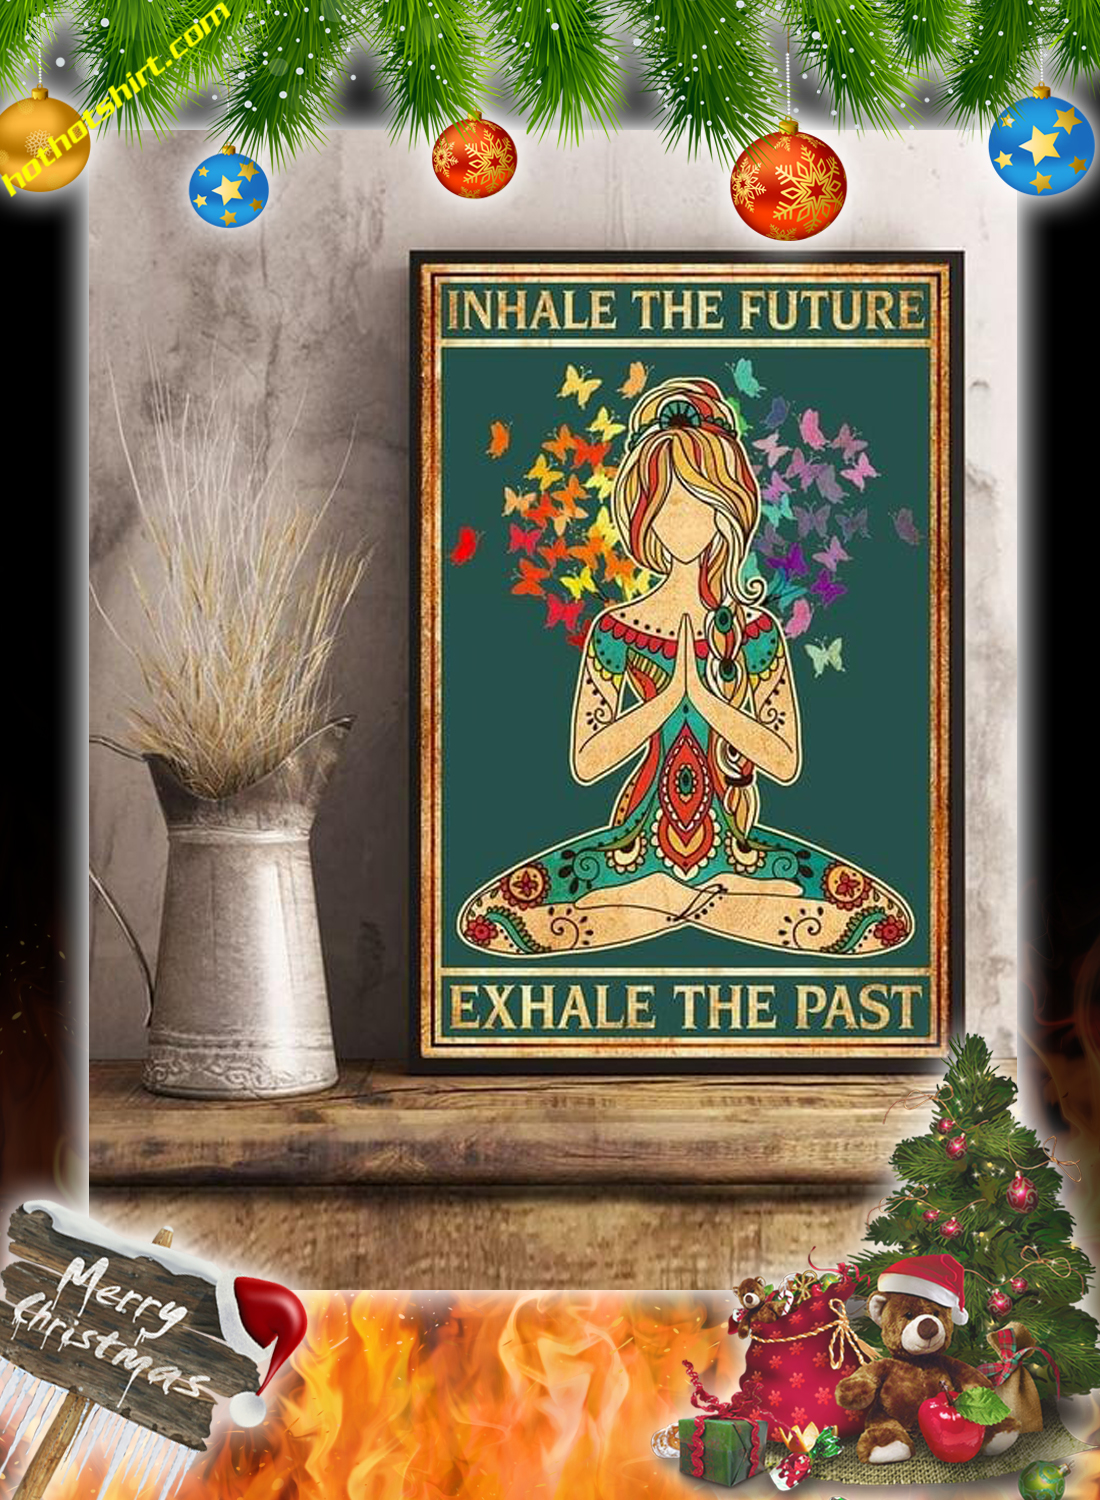 Yoga inhale the future exhale the past poster 2